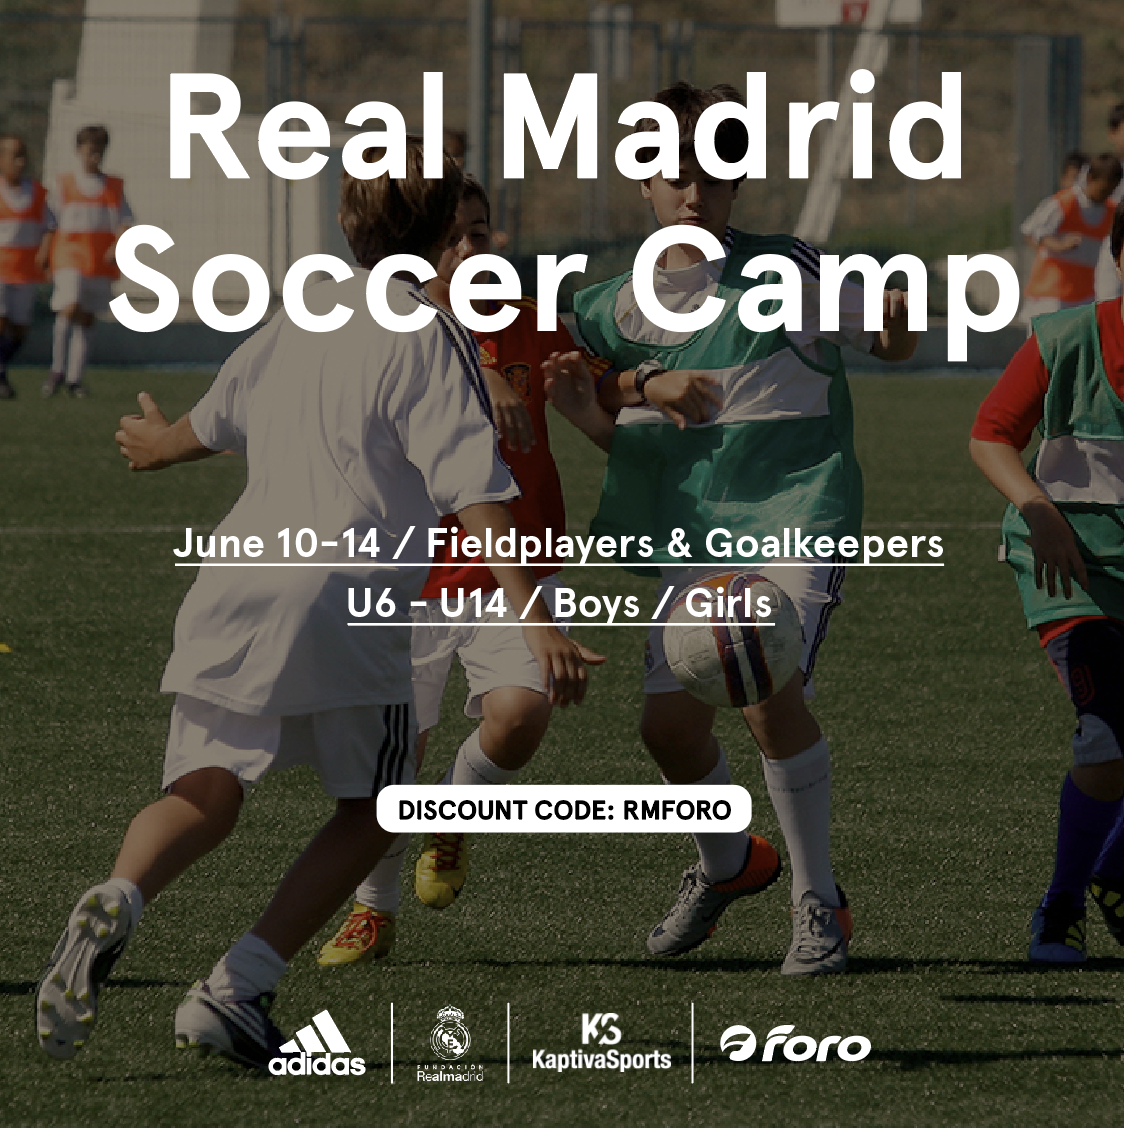 Real Madrid Soccer Camp - Real Madrid is coming to Foro for a June 10-14 soccer camp!Improve your soccer skills this summer and feel like a champion at the official Real Madrid Soccer Camp in Dallas. The best-proven way to get better at soccer is hard work, teamwork and technical drills.The camp will work with players to create well rounded athletes.Ages 6-14, Boys & Girls